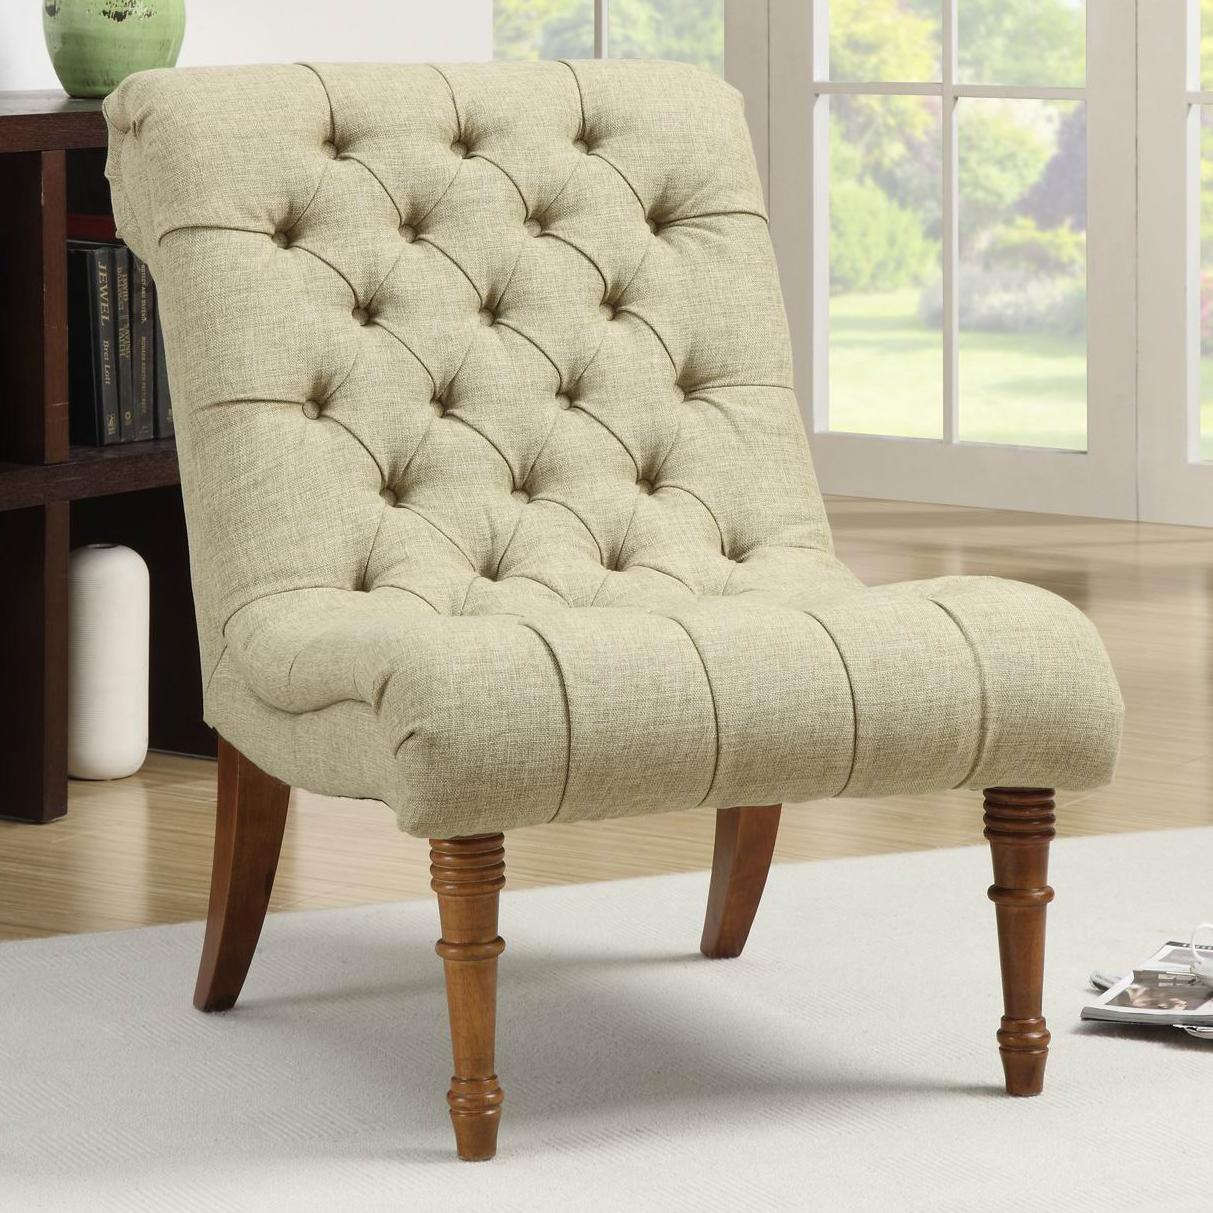 Accent Seating Tufted Accent Chair Without Arms Quality